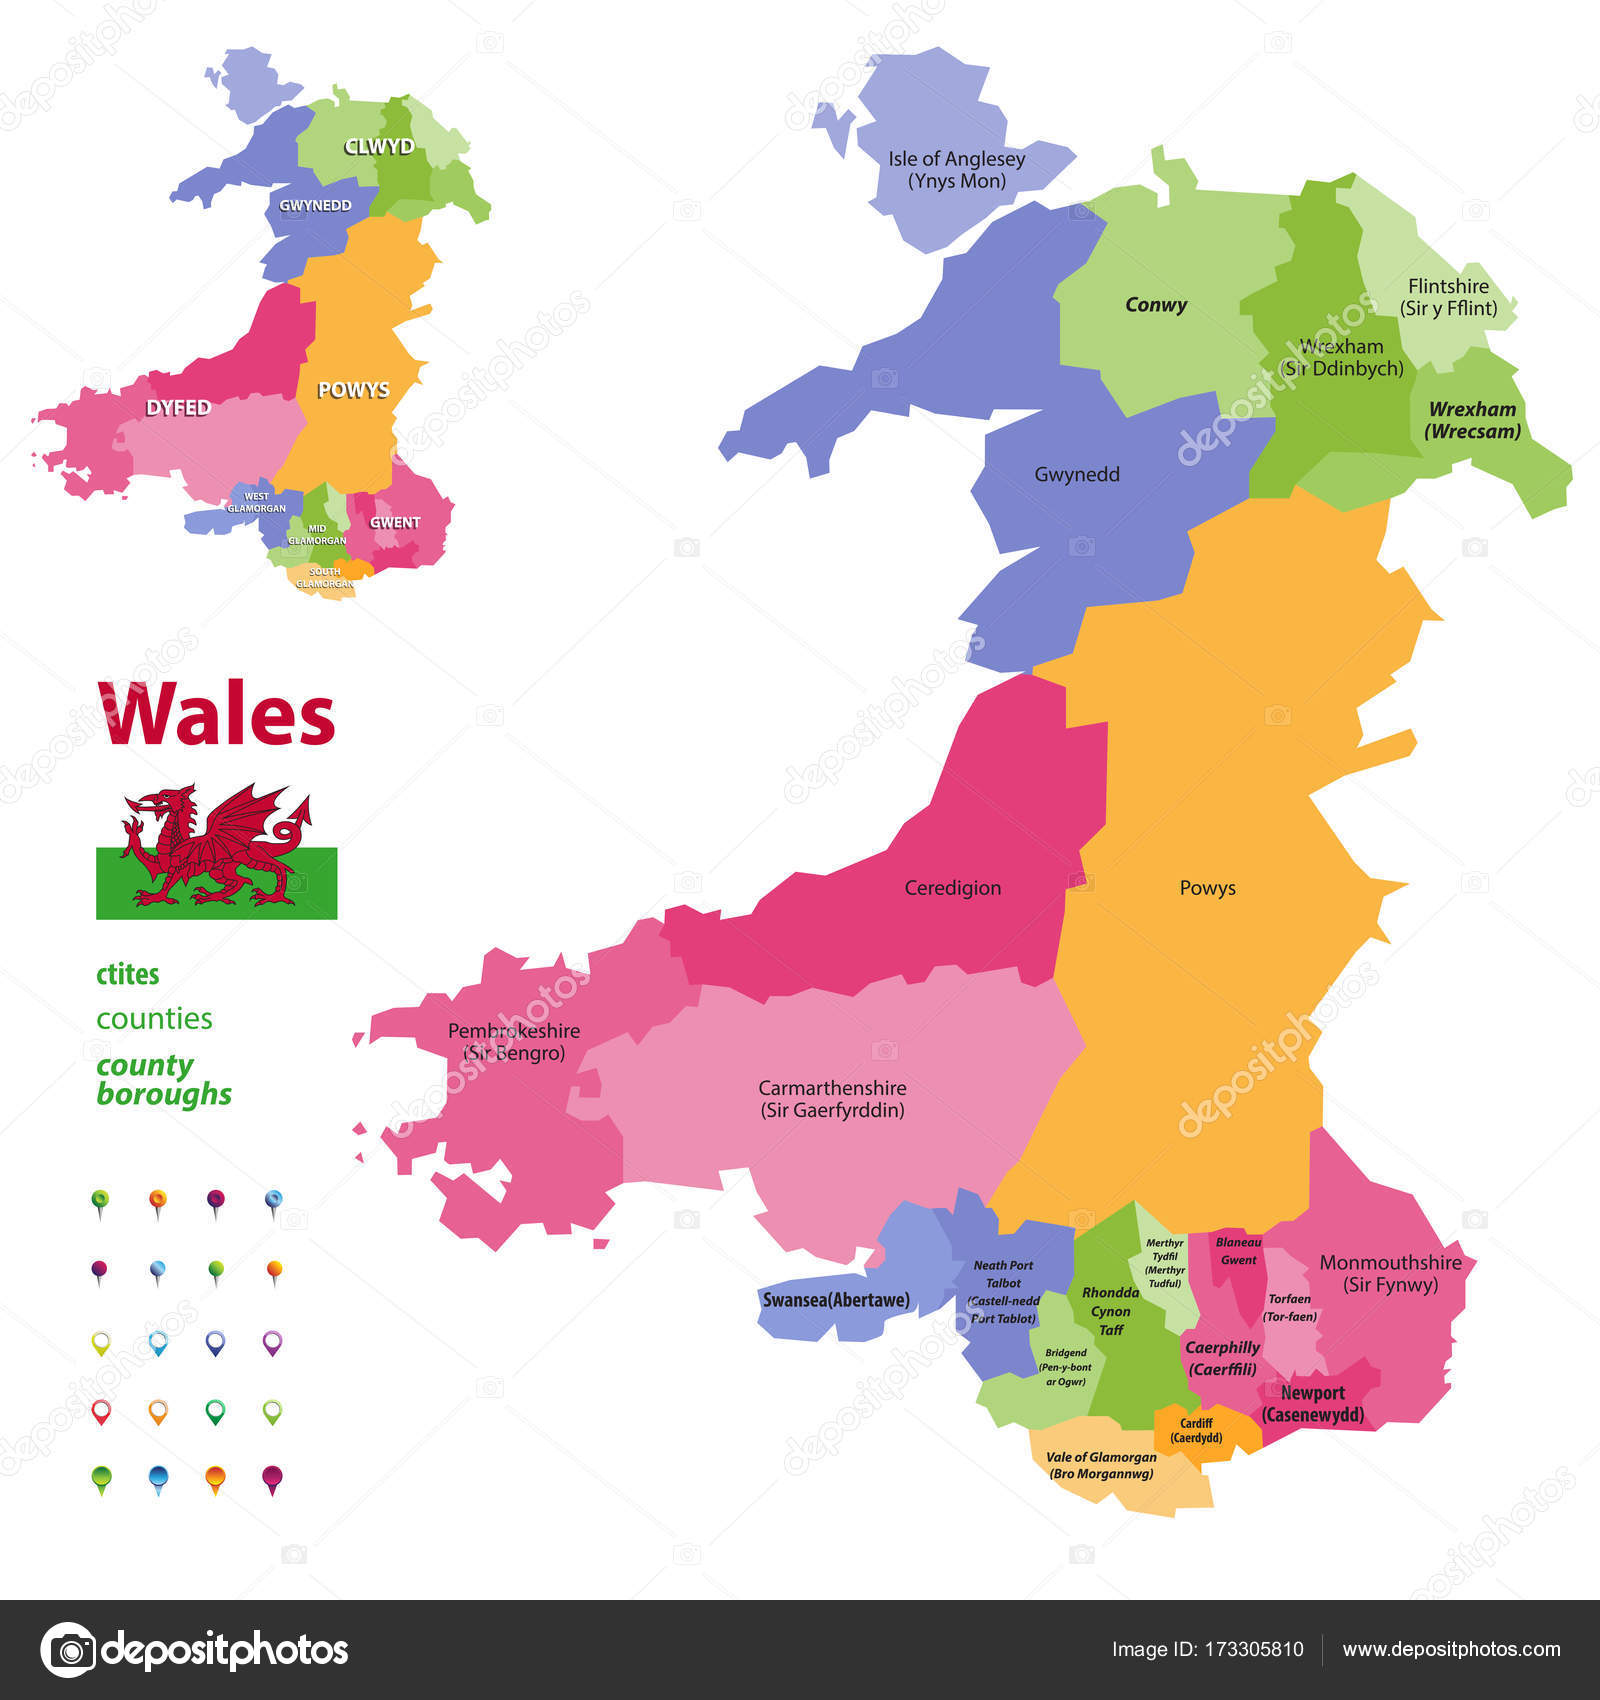 Preserved Counties Of Wales Vector Administrative Map With - Welsh language map